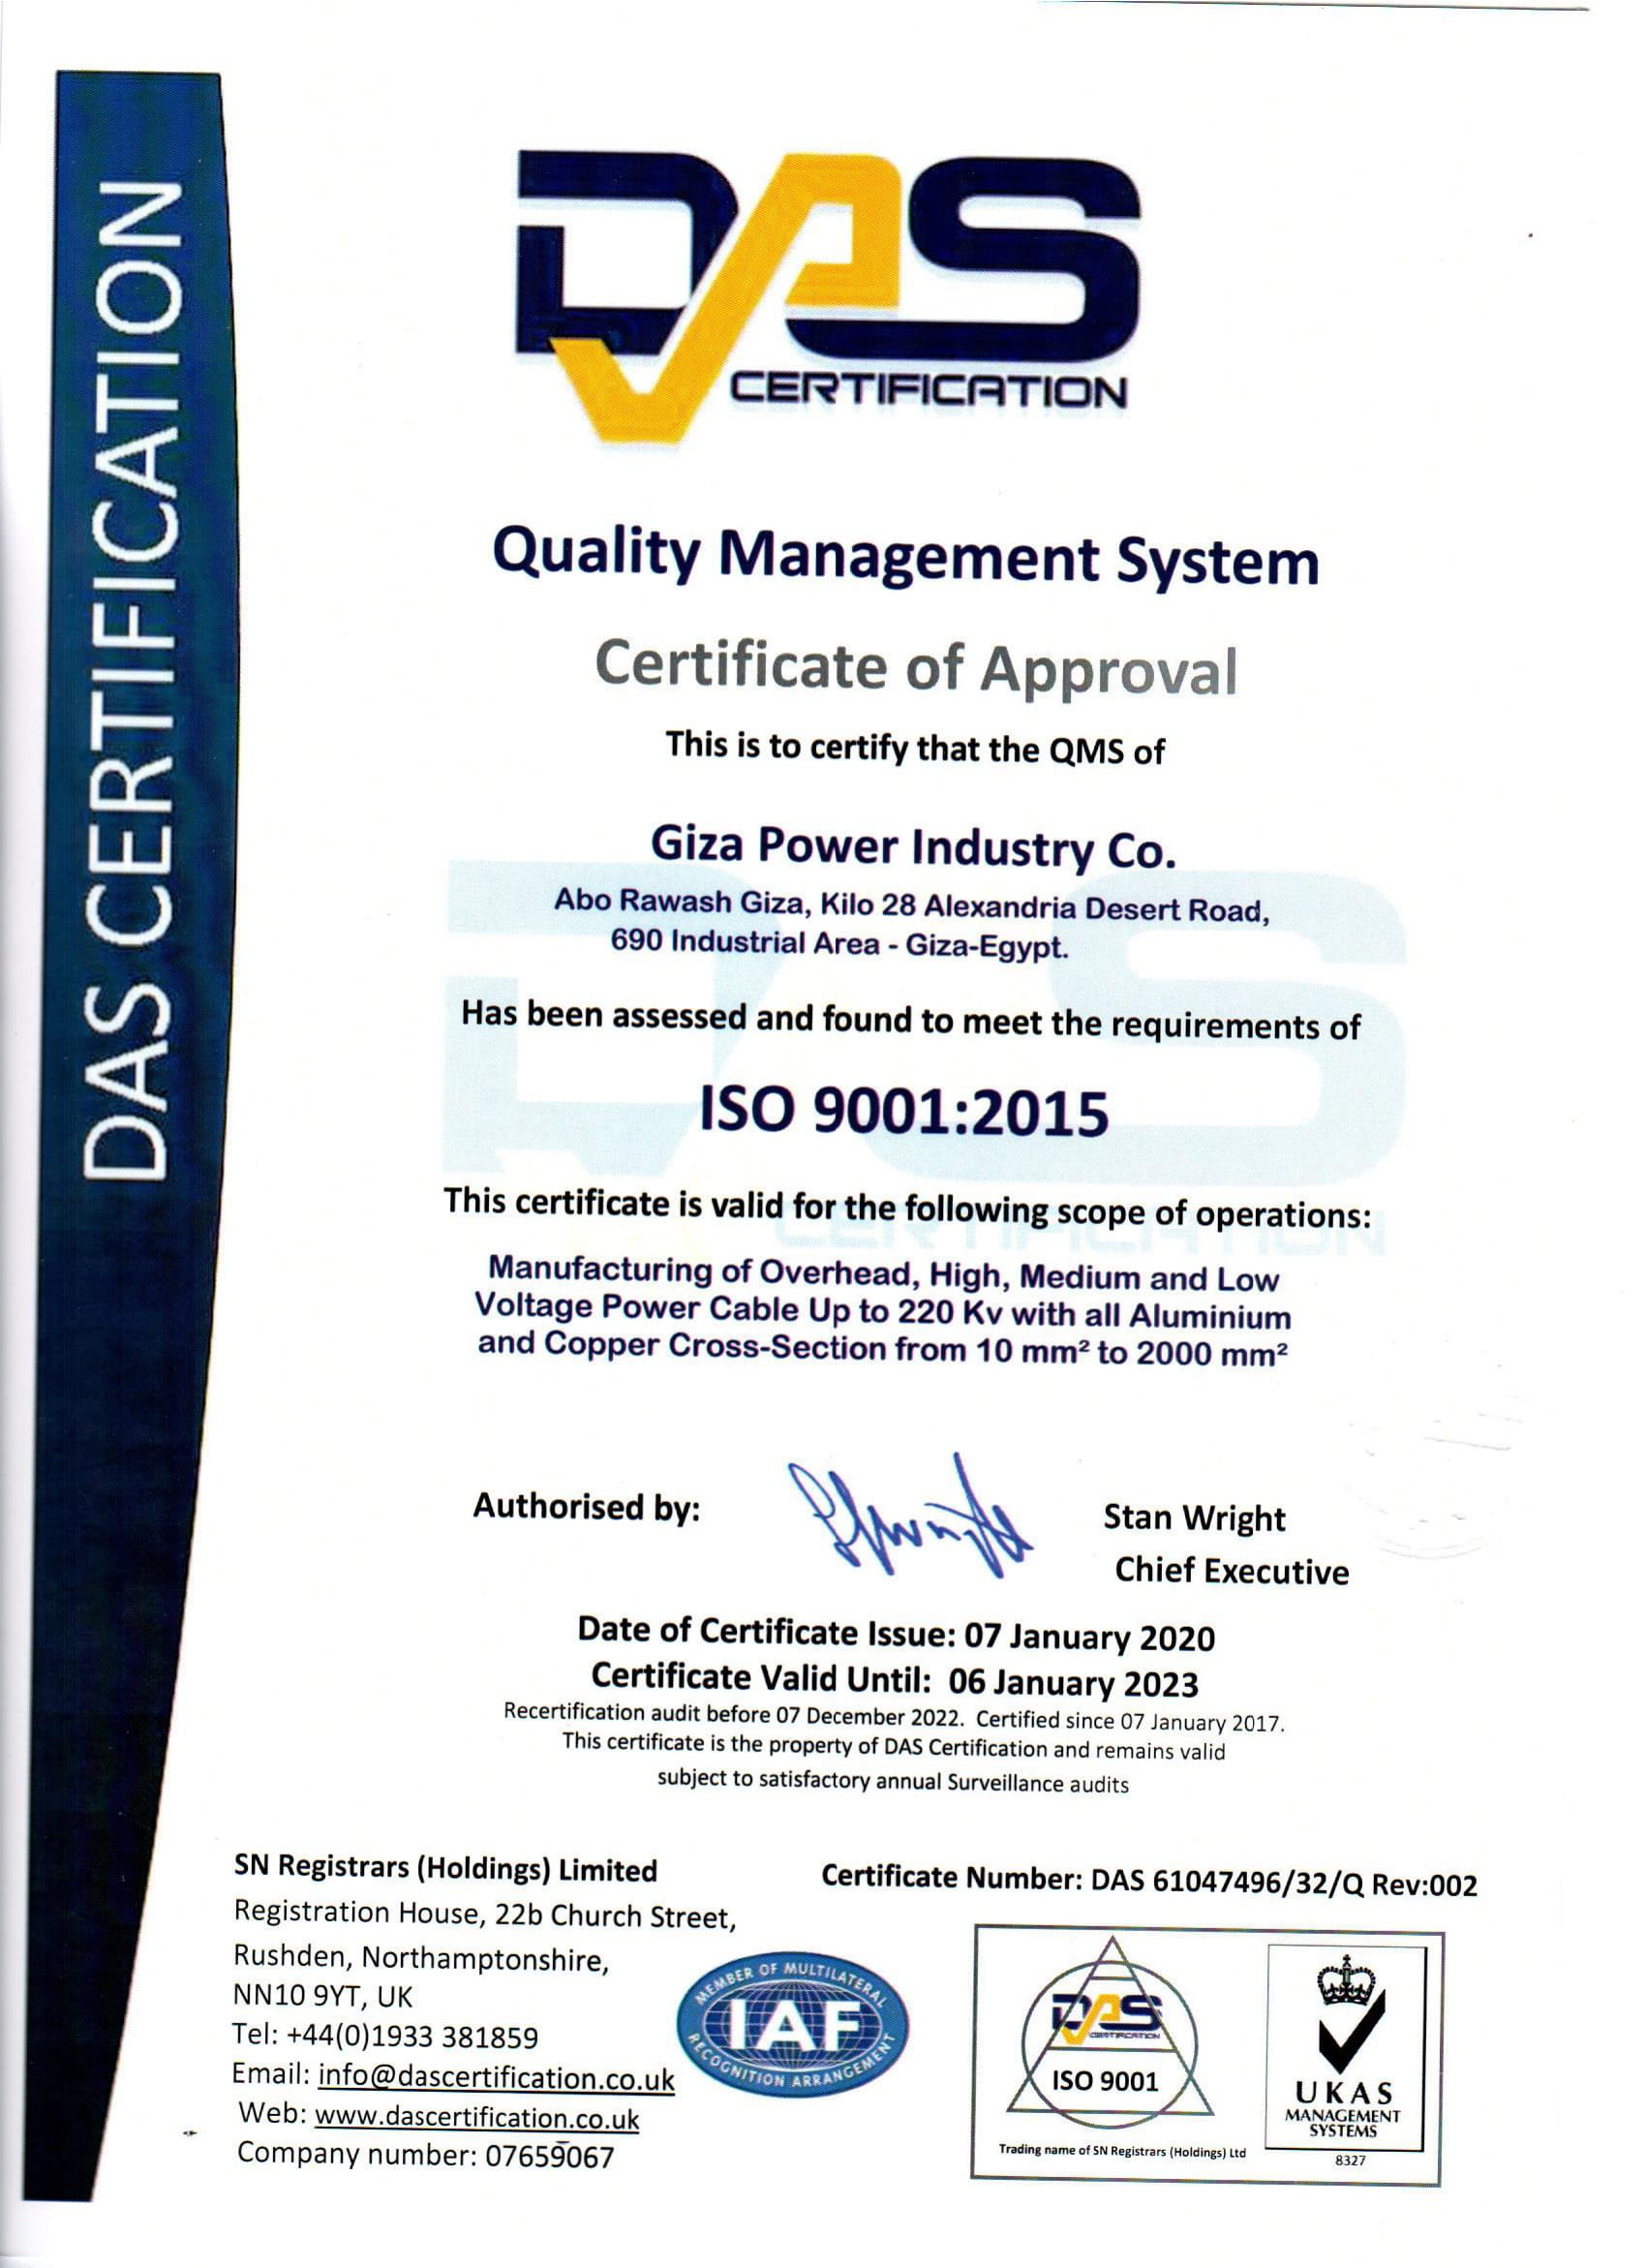 Giza Power Industry certificate